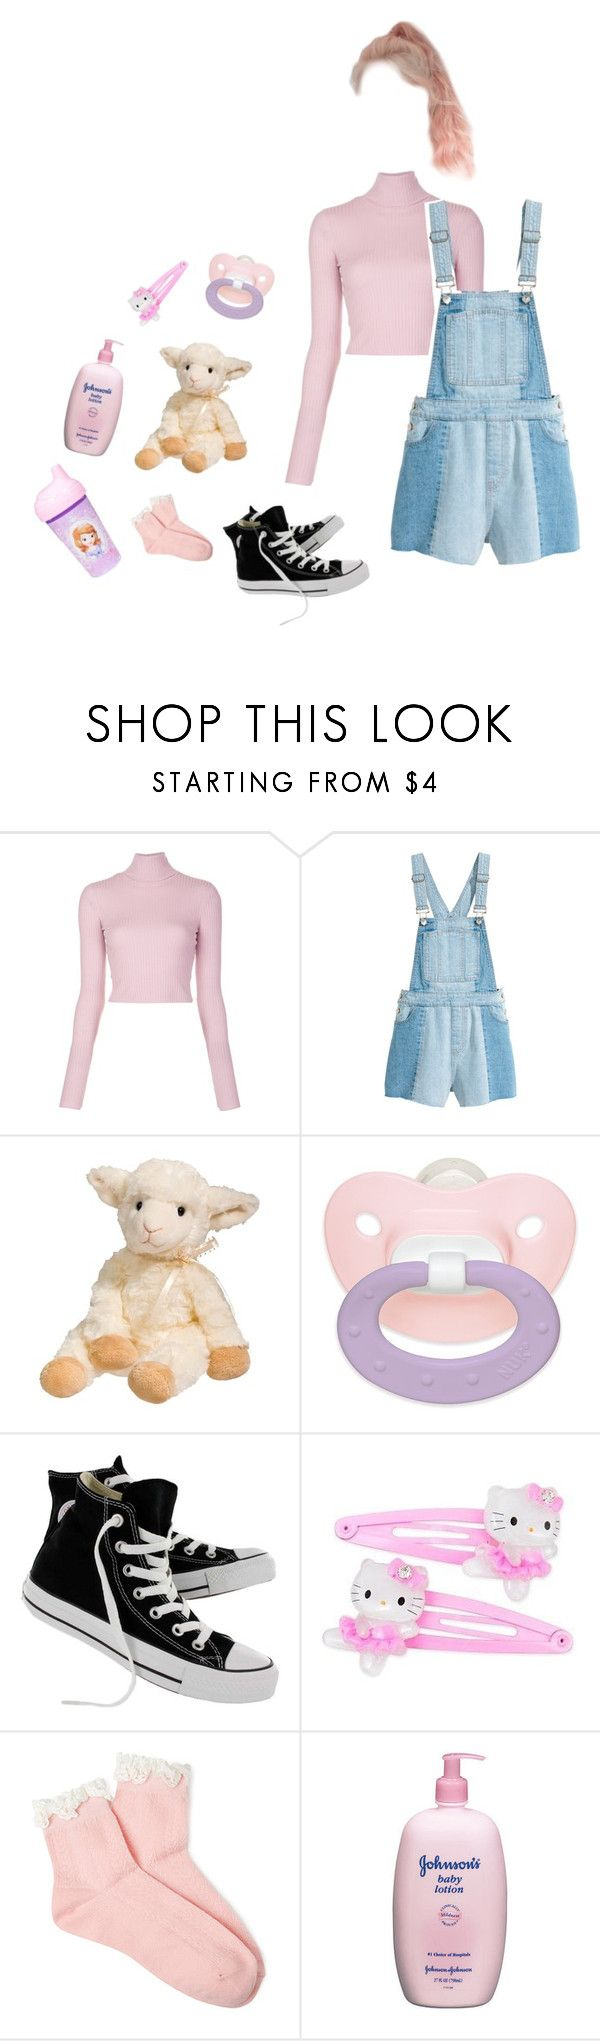 """""""• mommys little girl •"""" by grungebabydoll1 ❤ liked on Polyvore featuring A.L.C., Converse, Hello Kitty, Forever 21, Johnson's Baby, Disney, BabyGirl, little, mommy and littlespace"""